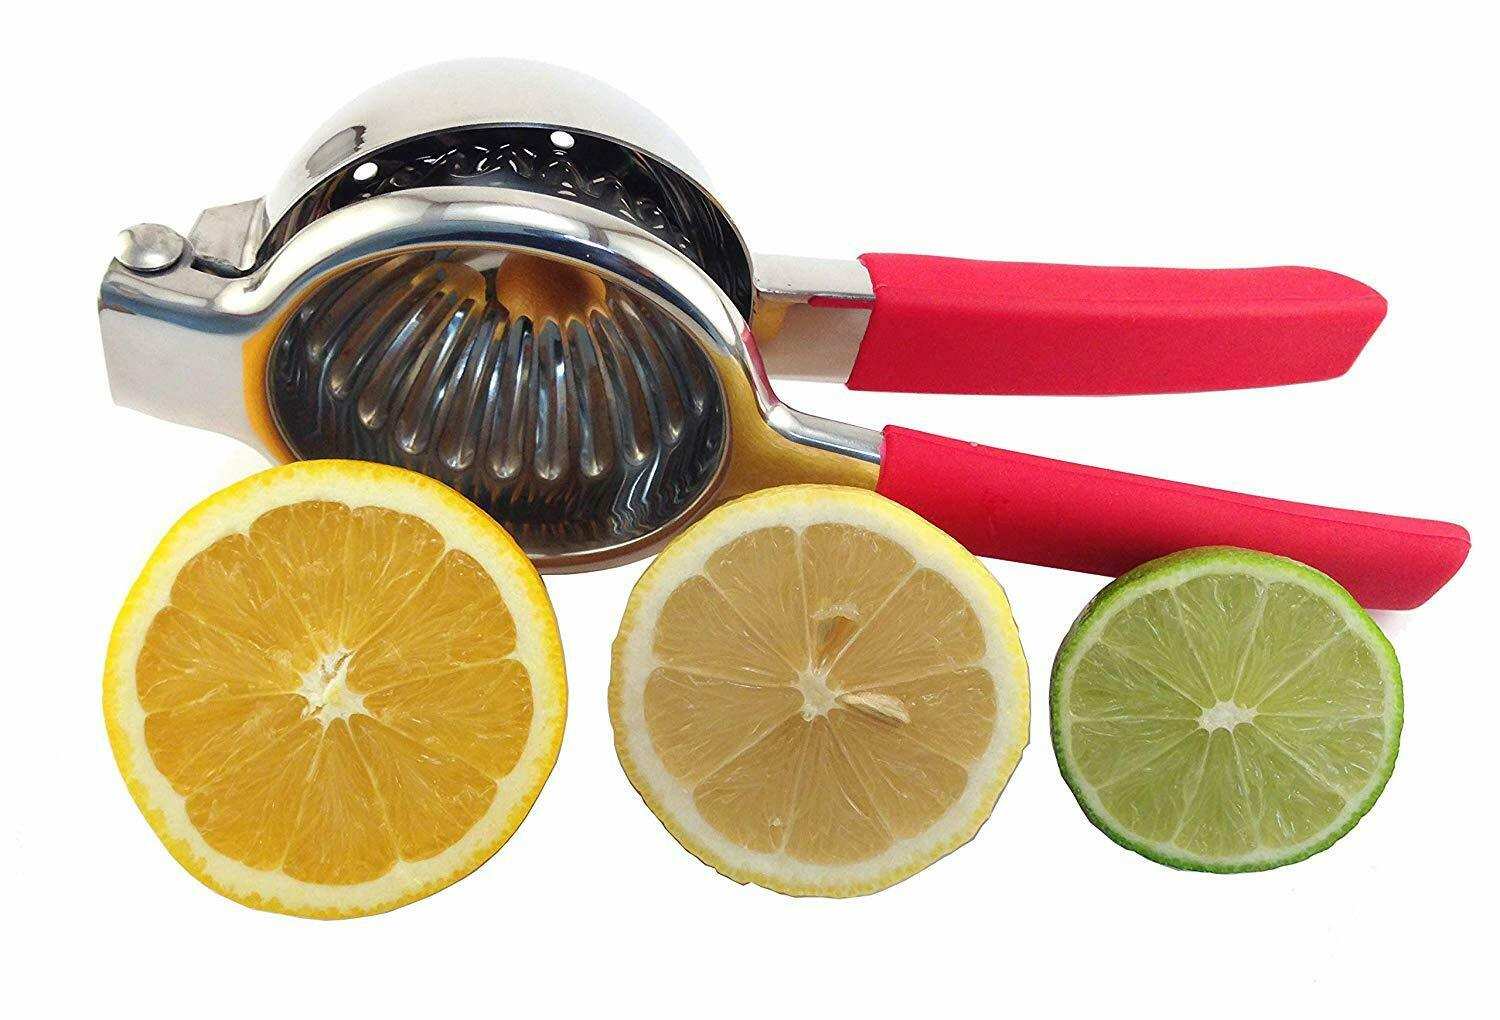 lemon and lime squeezer stainless steel manual